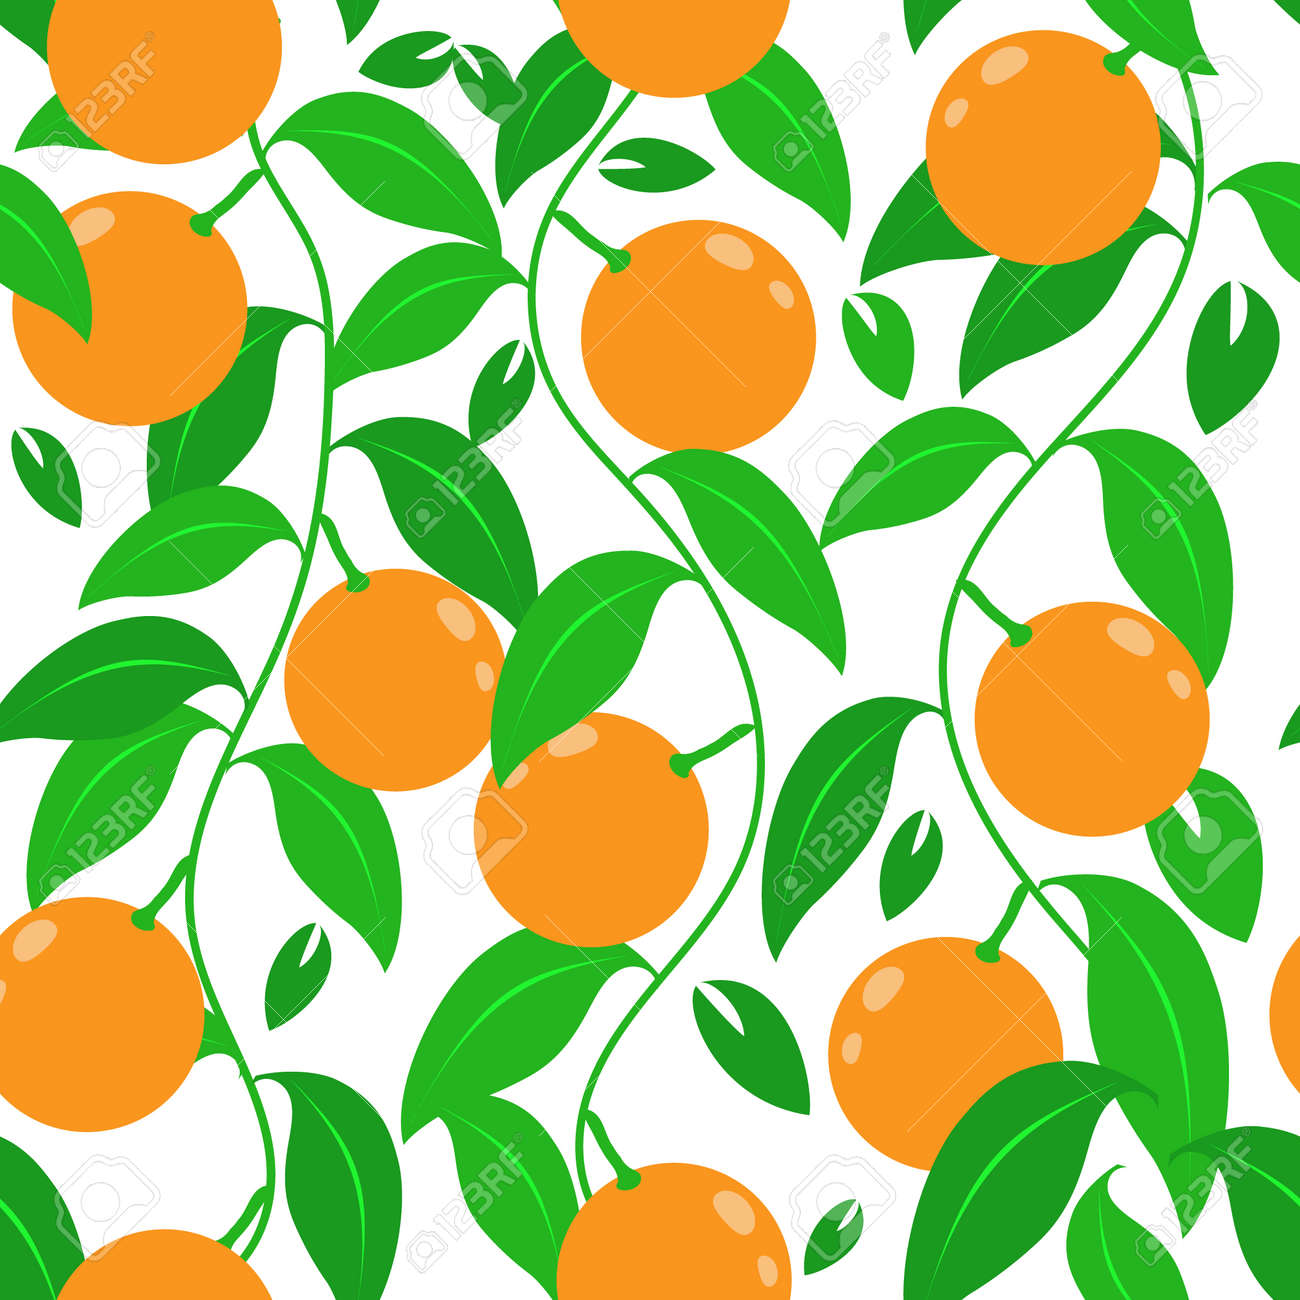 Tropical abstract seamless vector pattern with an orange, leaves. For printing and design. - 151774939